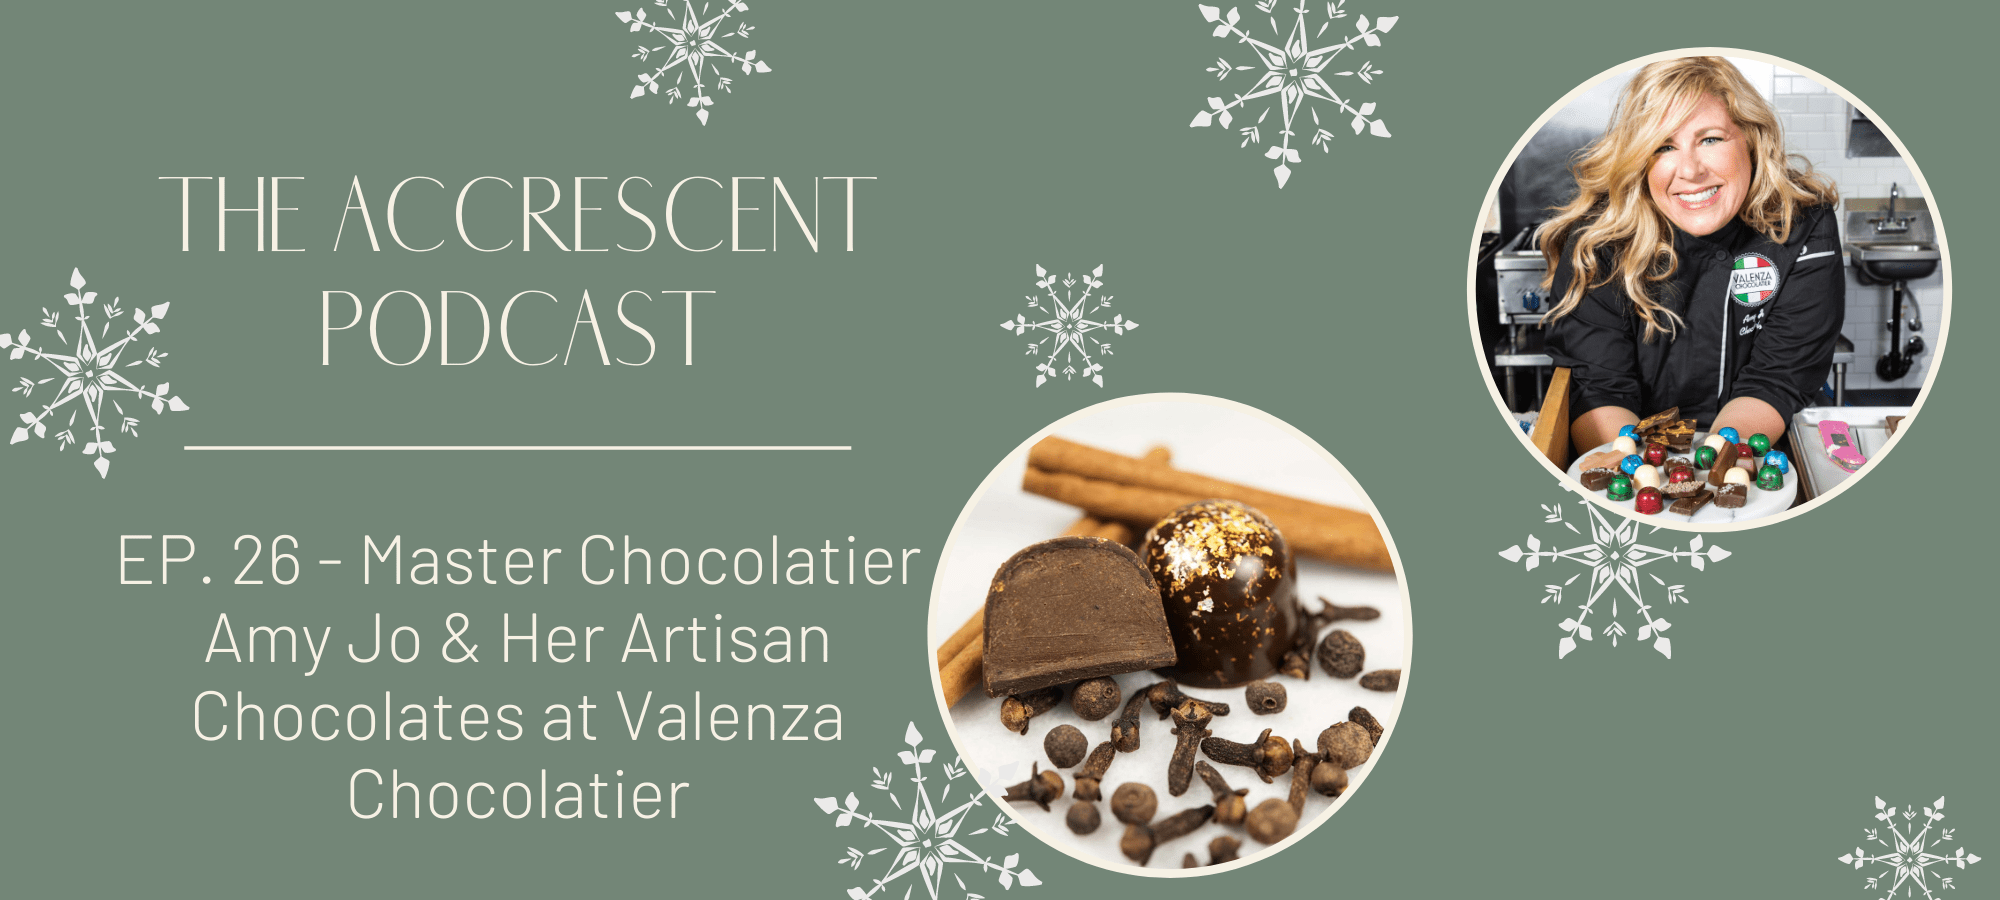 Master Chocolatier Amy Jo & Her Artisan Chocolates at Valenza Chocolatier